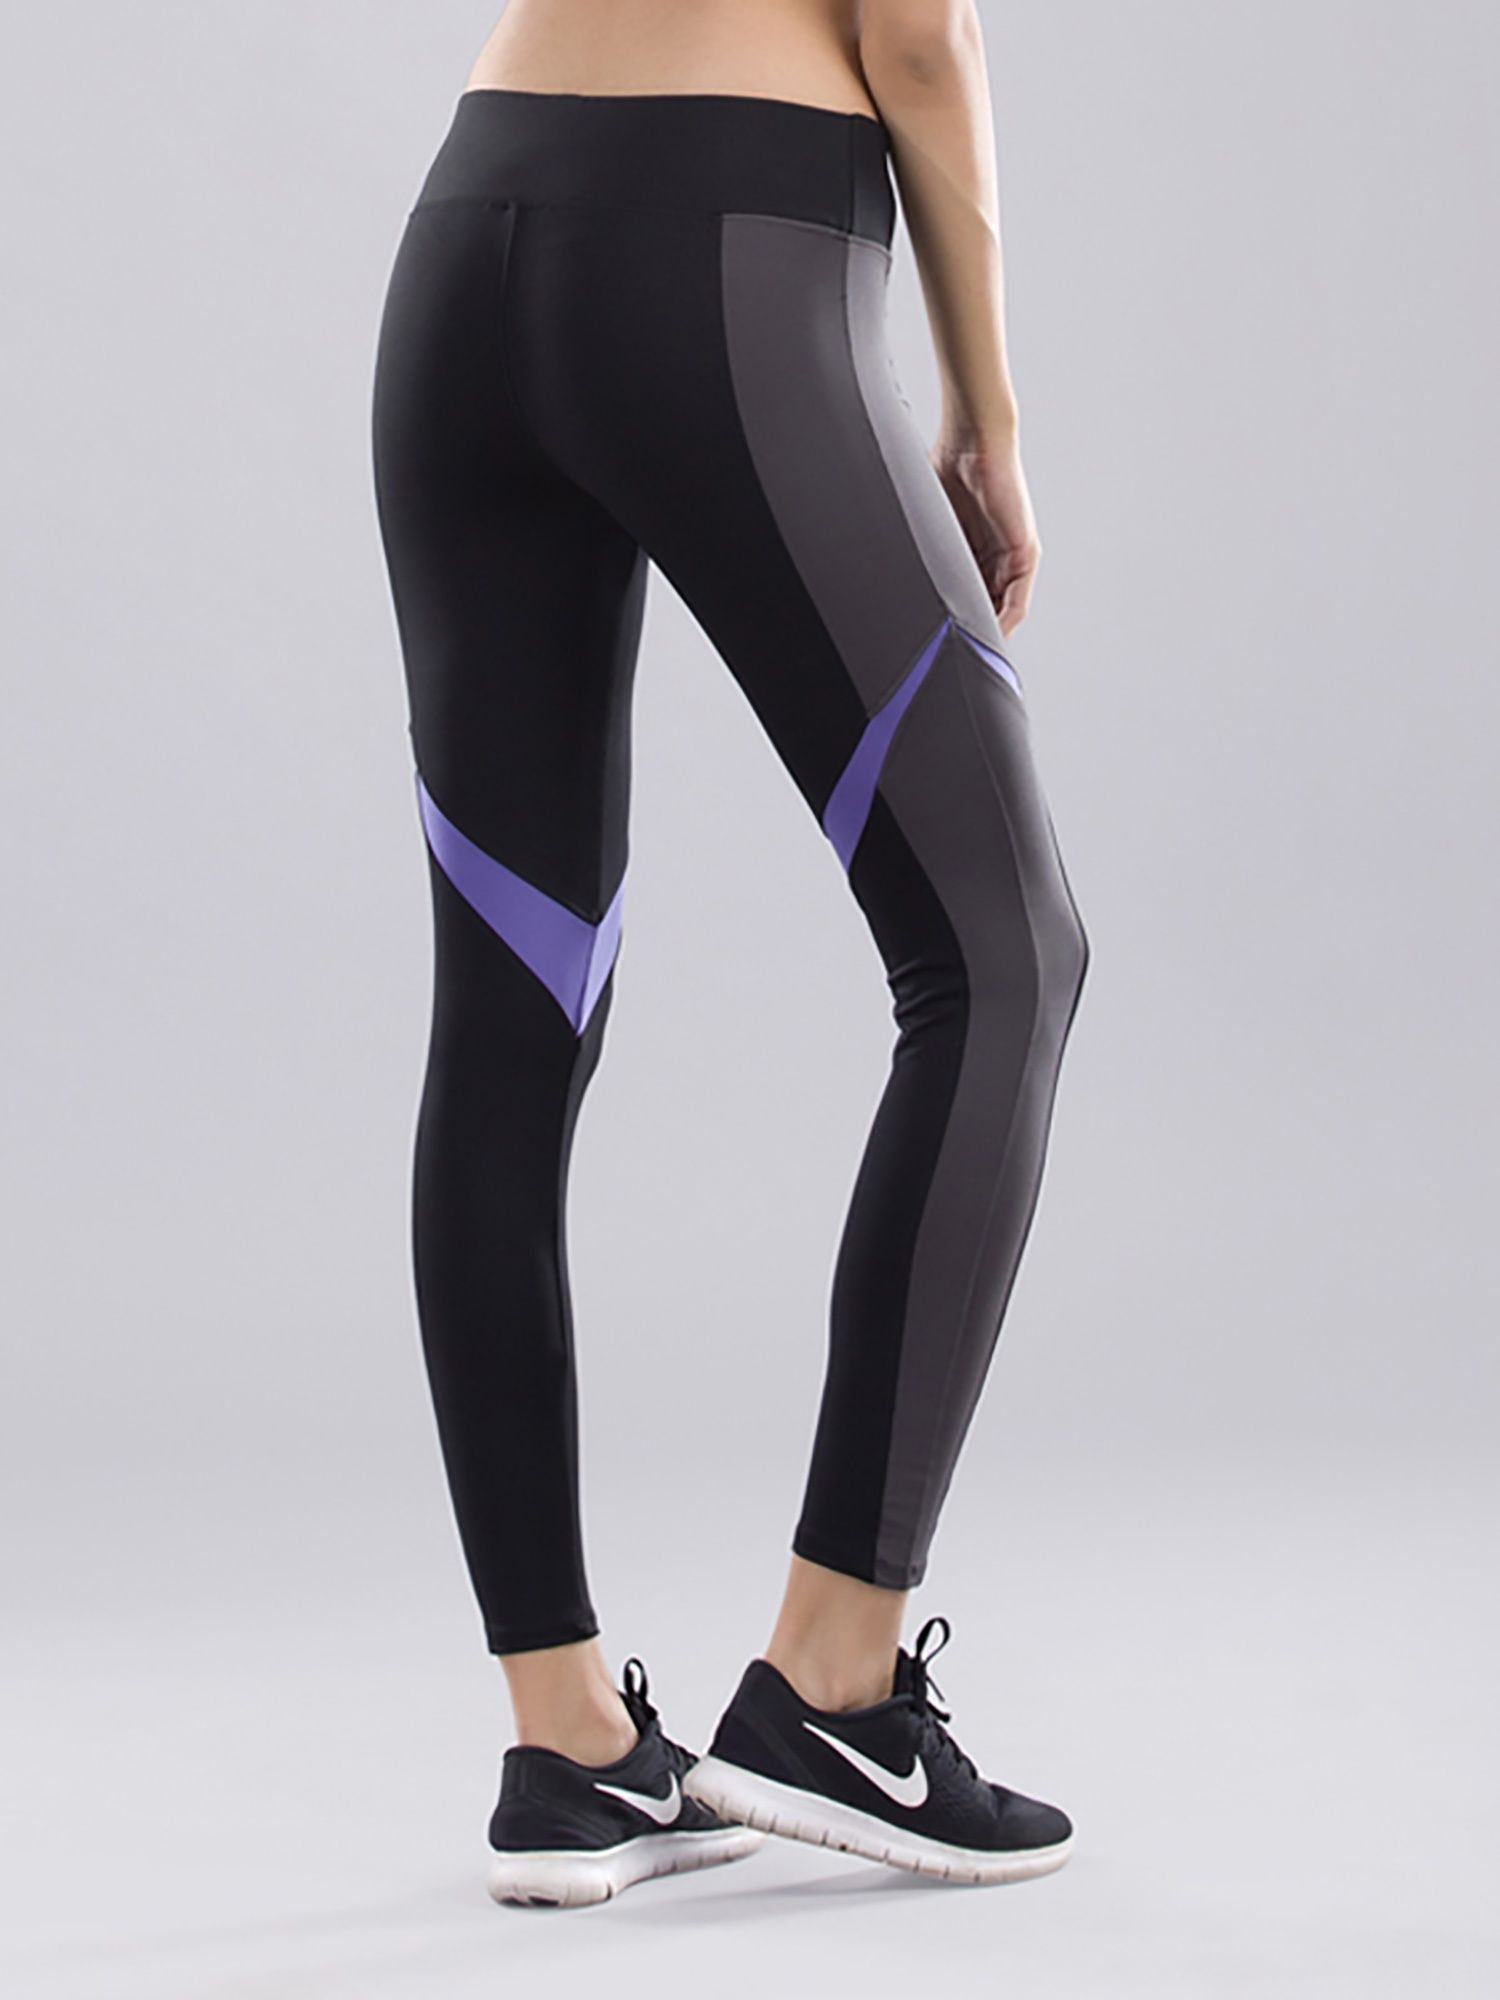 Kica Sprawl Leggings - Black